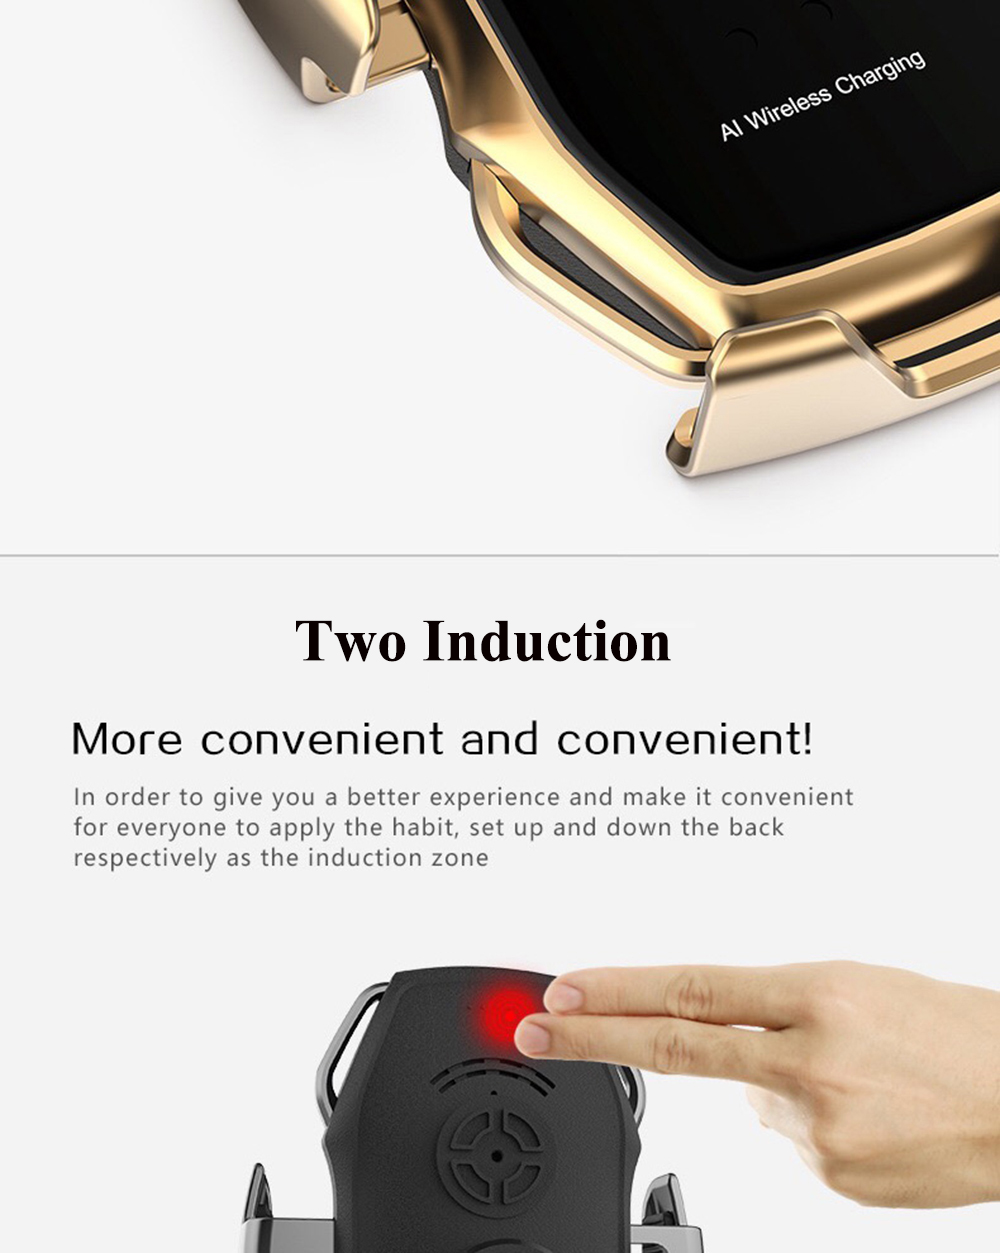 07Two-Point Smart Induction Wireless Charger Car Mount 10W Fast Charge Holder